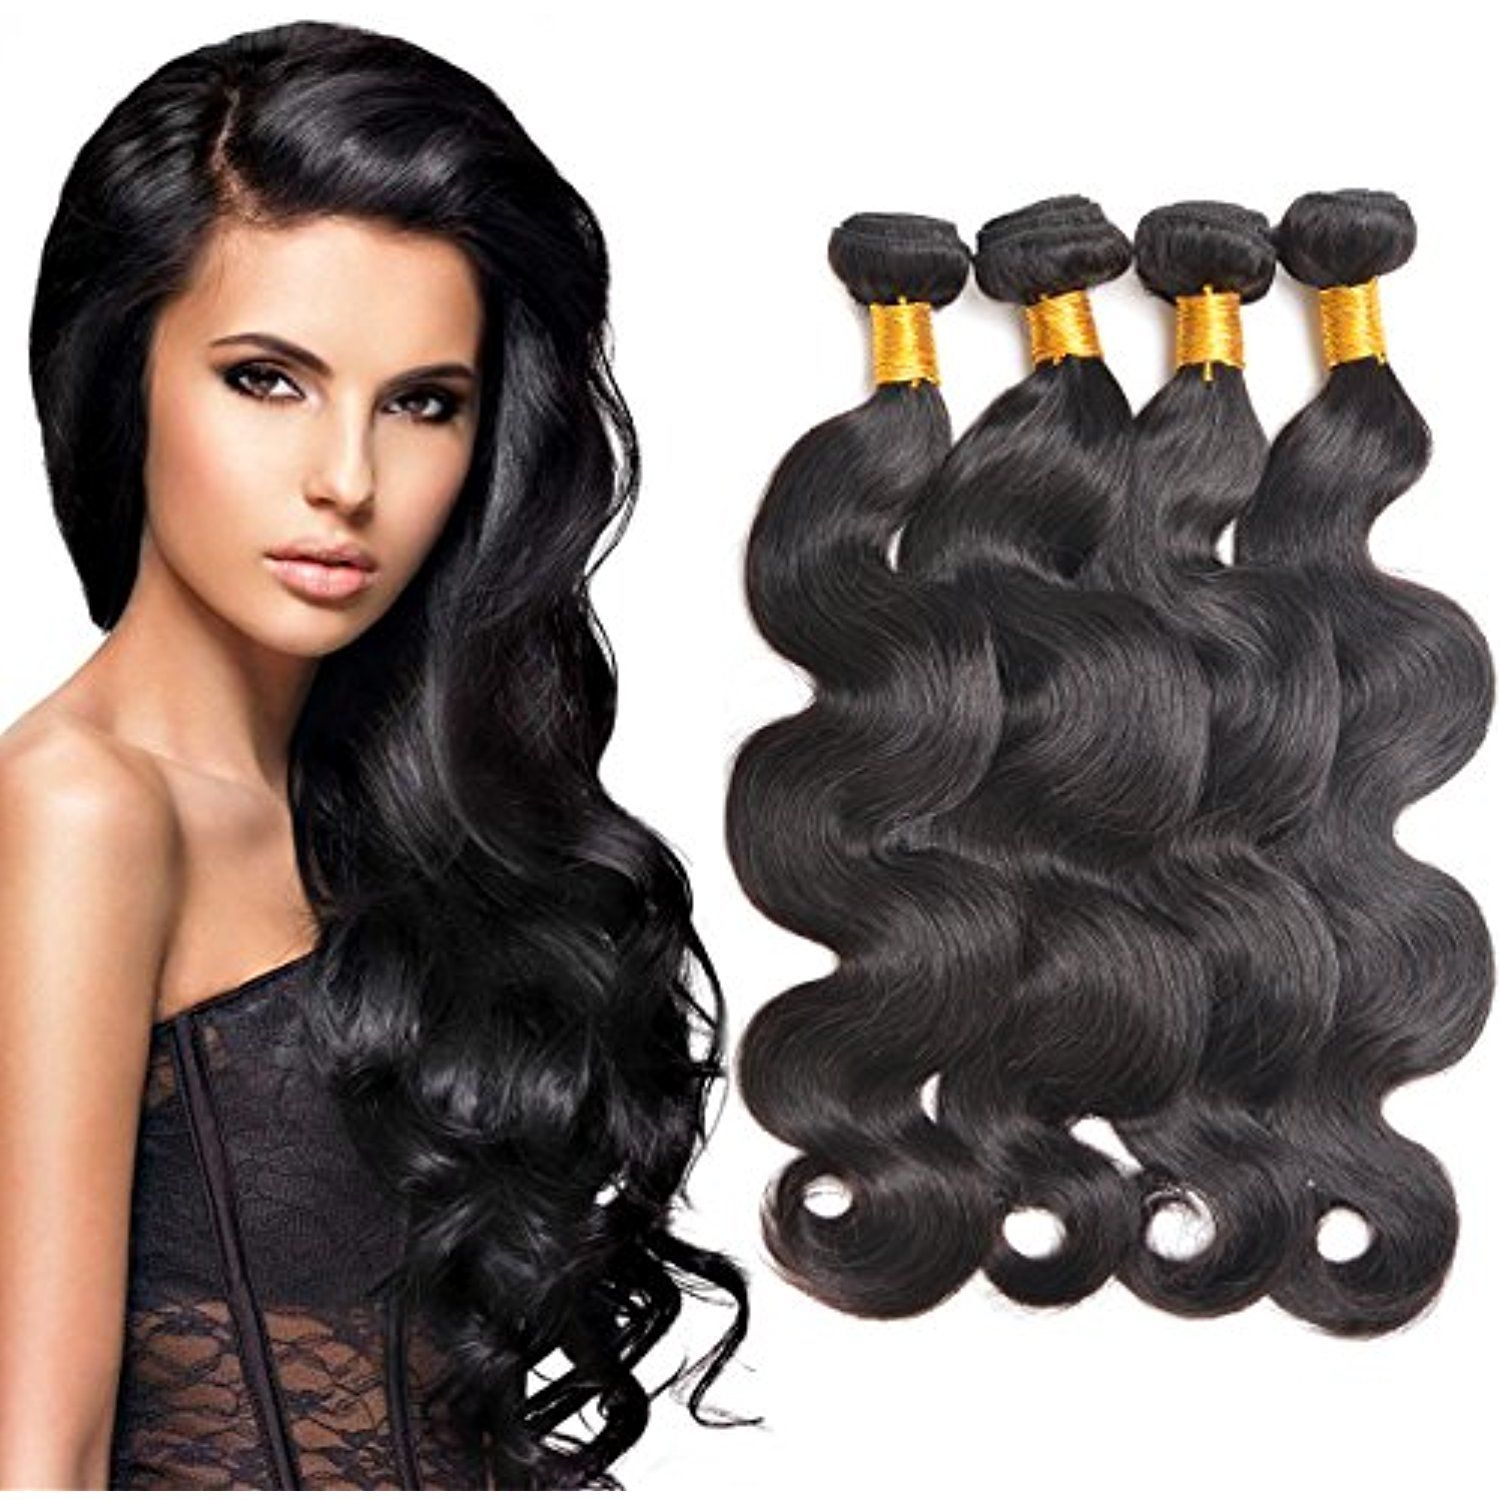 Body Wave Brazilian Hair Human Hair Weave Grade 7a Virgin Hair